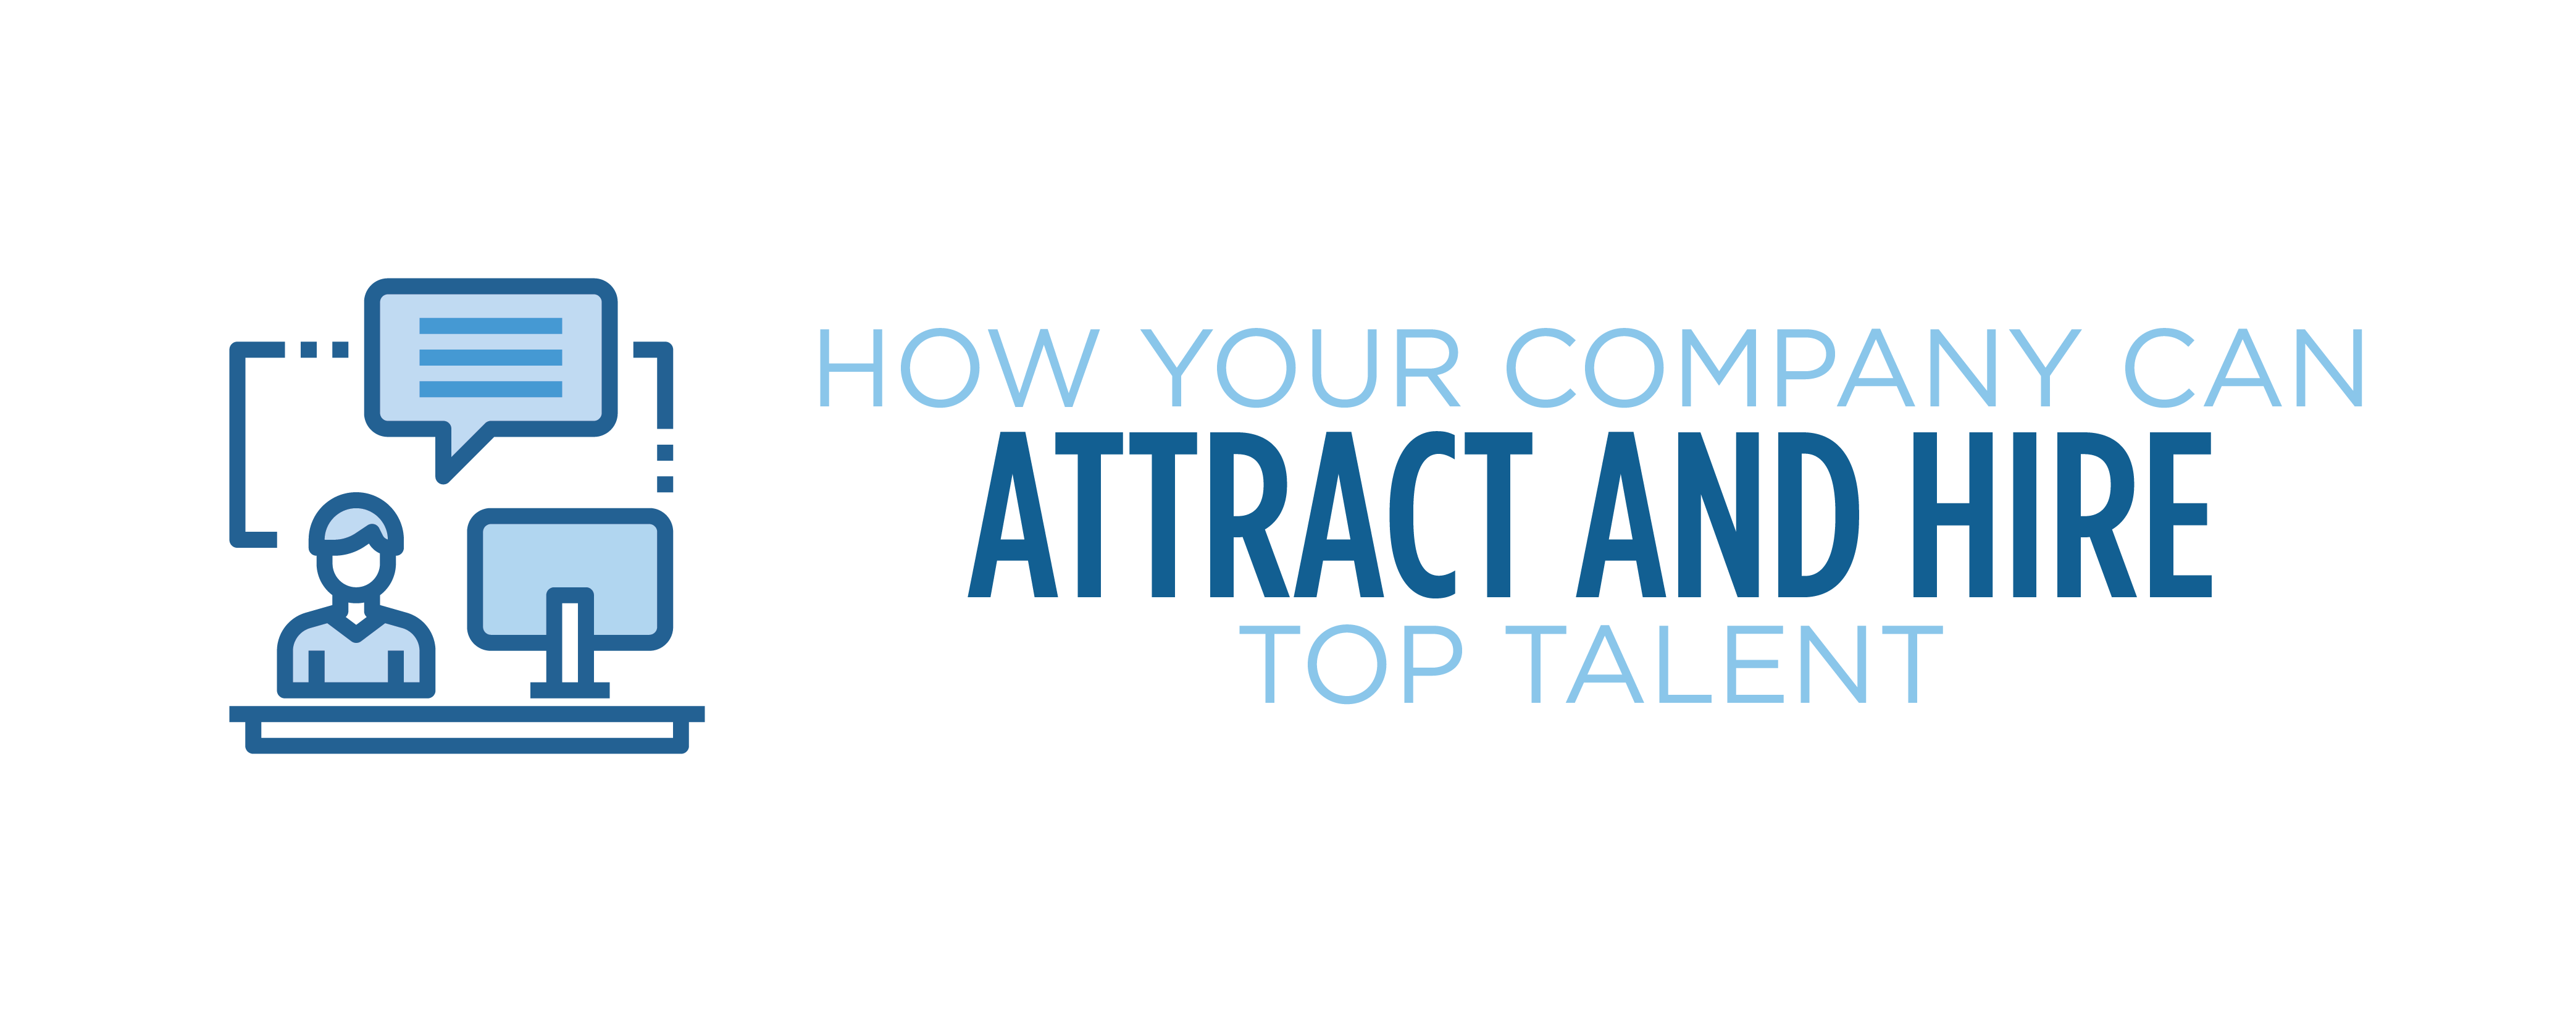 how your company can attract and hire top talent